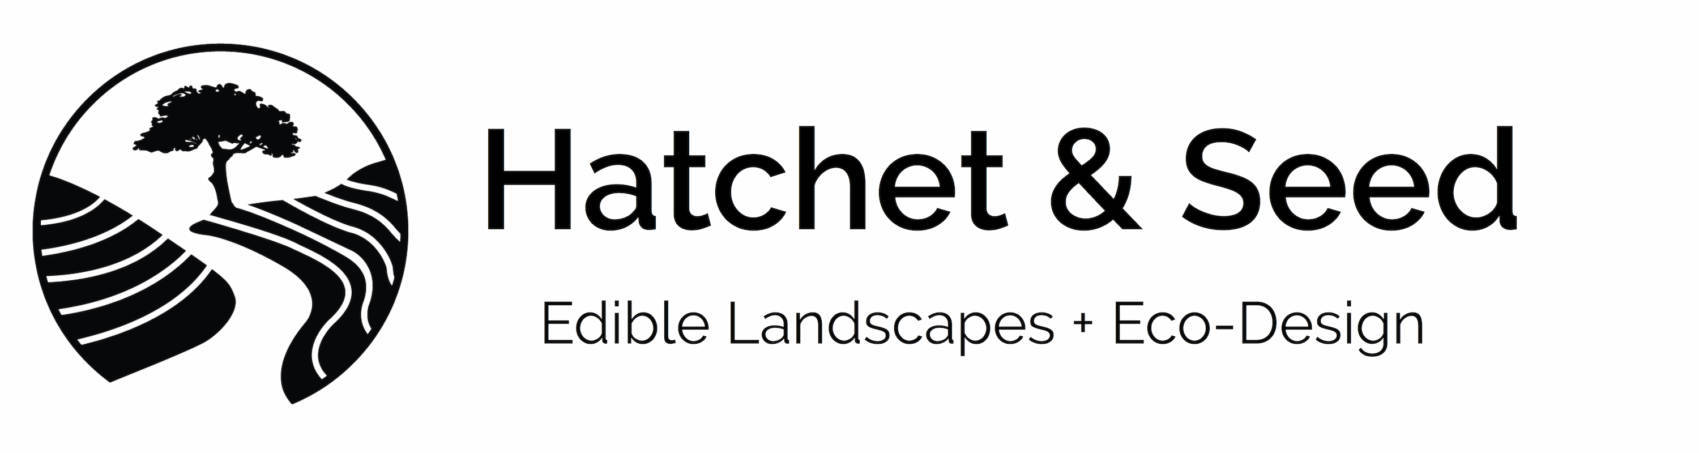 Hatchet & Seed - Edible Landscapes